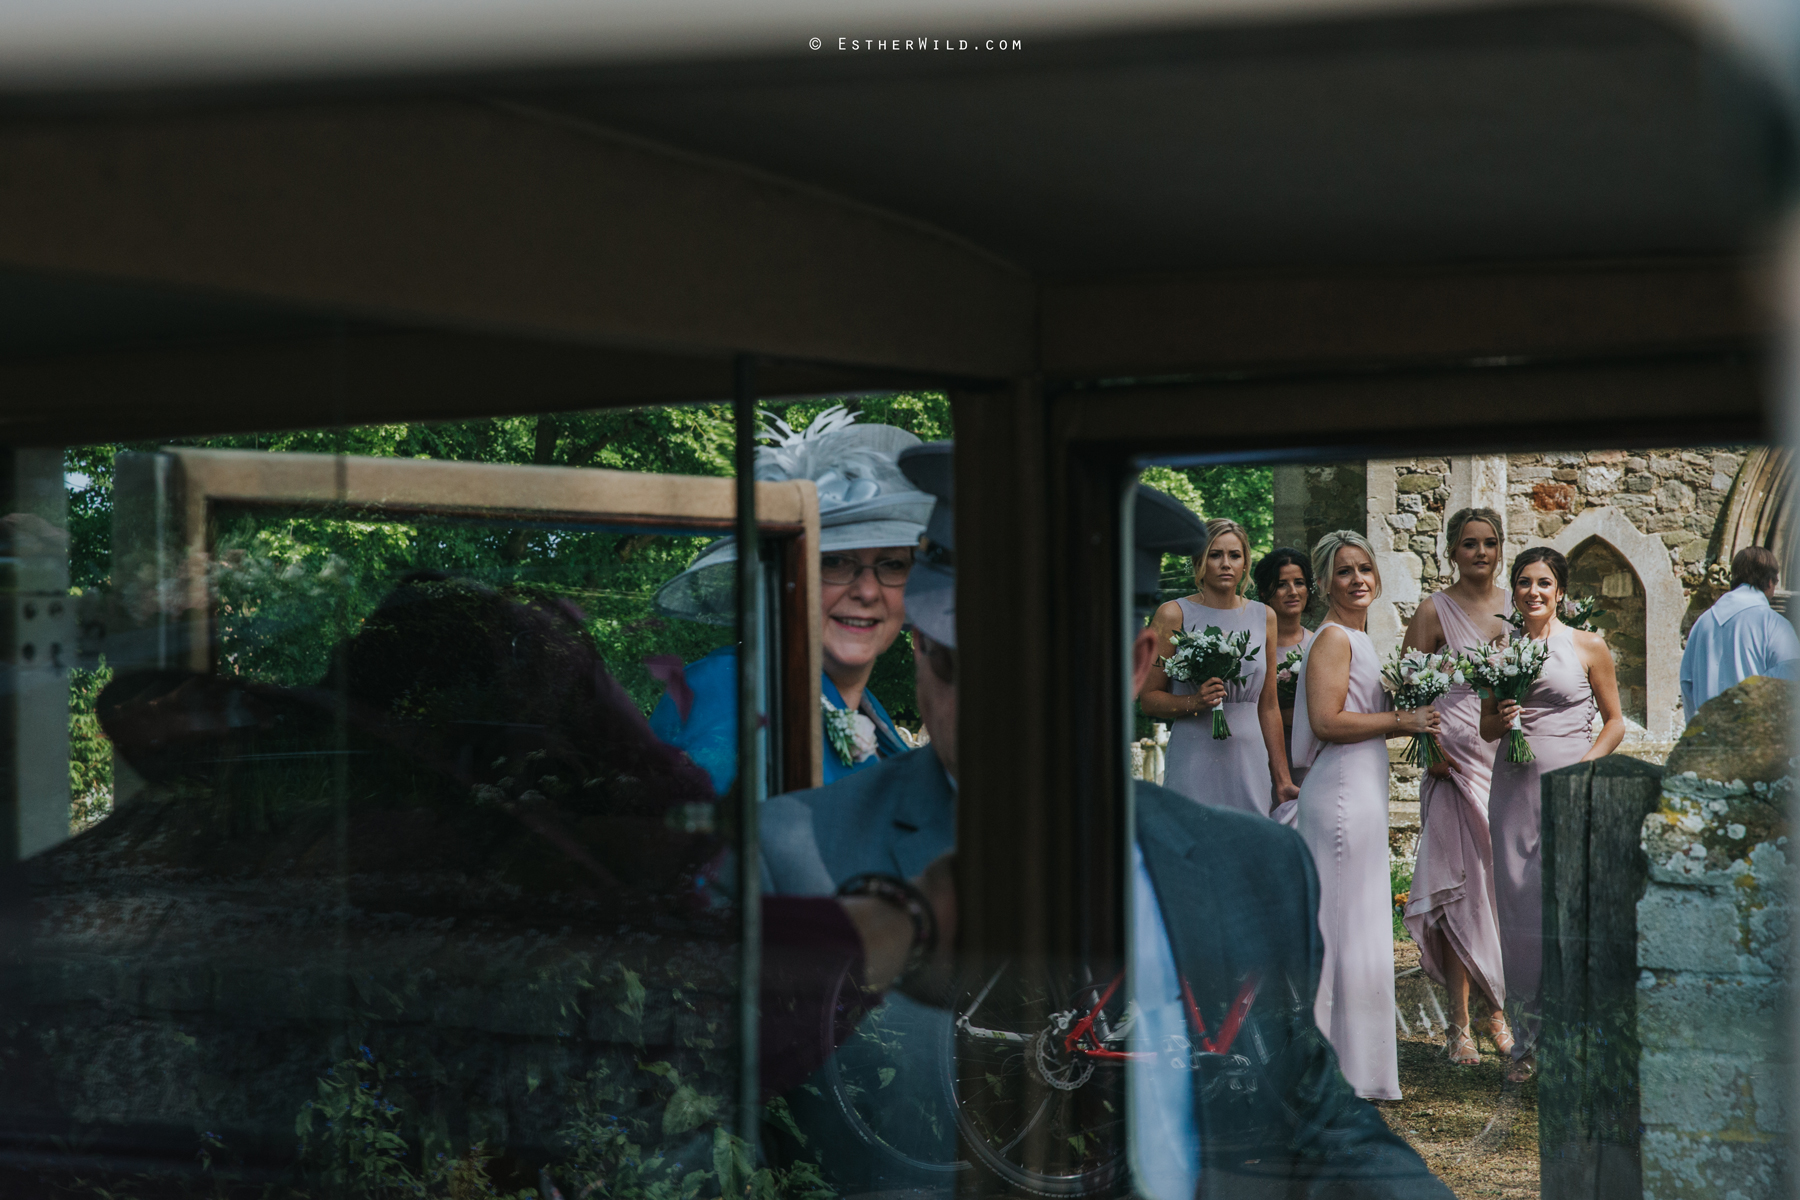 Wootton_Wedding_Copyright_Esther_Wild_Photographer_IMG_0748.jpg